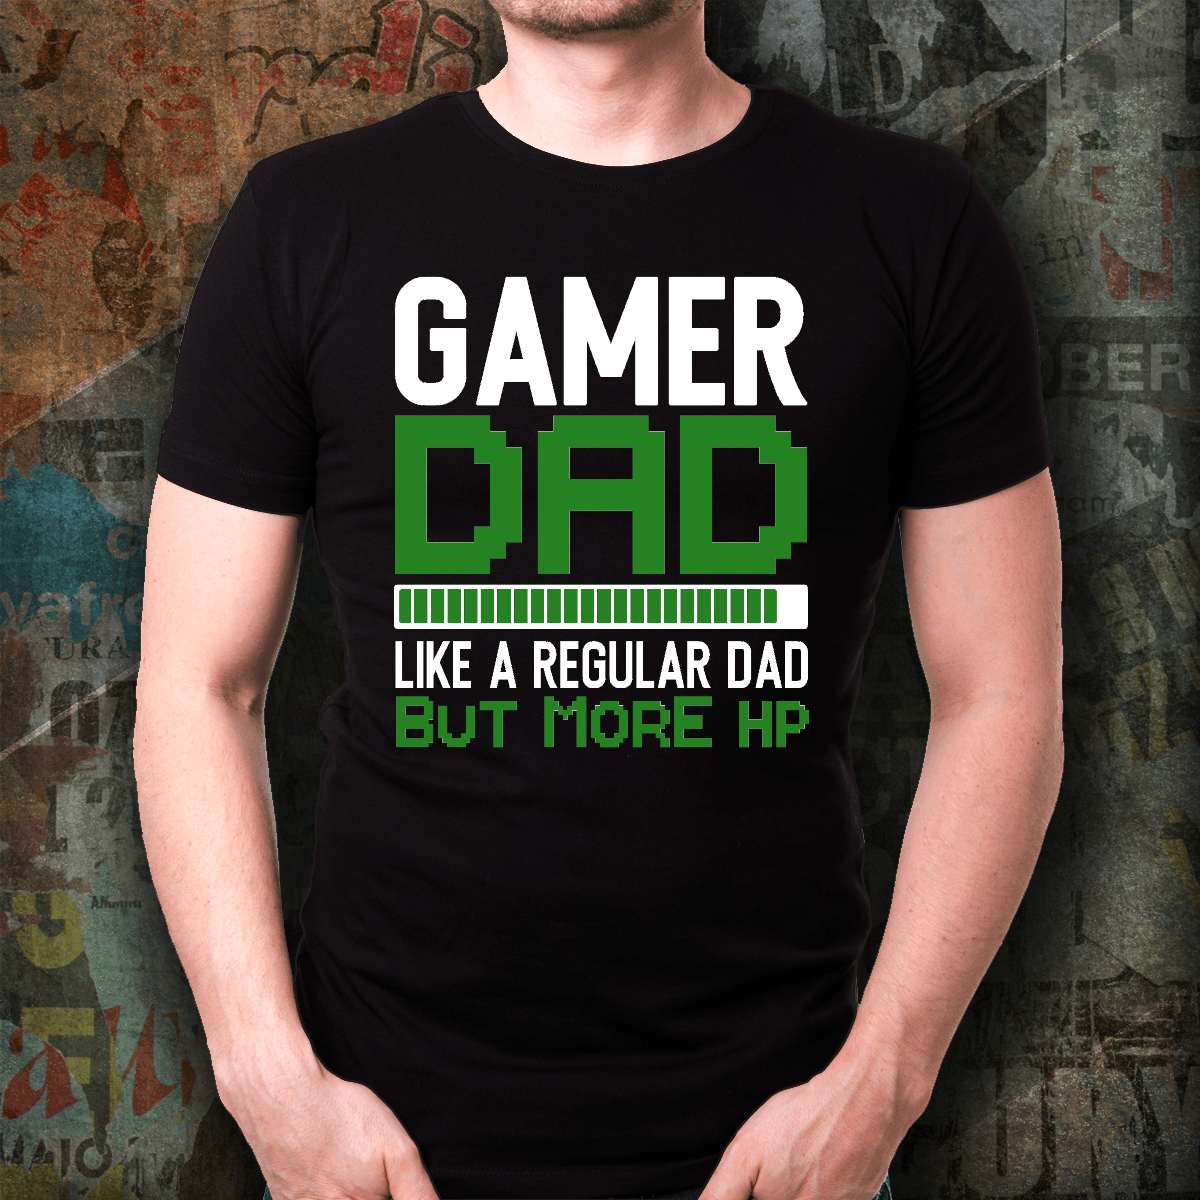 """Gamer Dad"" Cotton Unisex T-Shirt - S&G Collections"